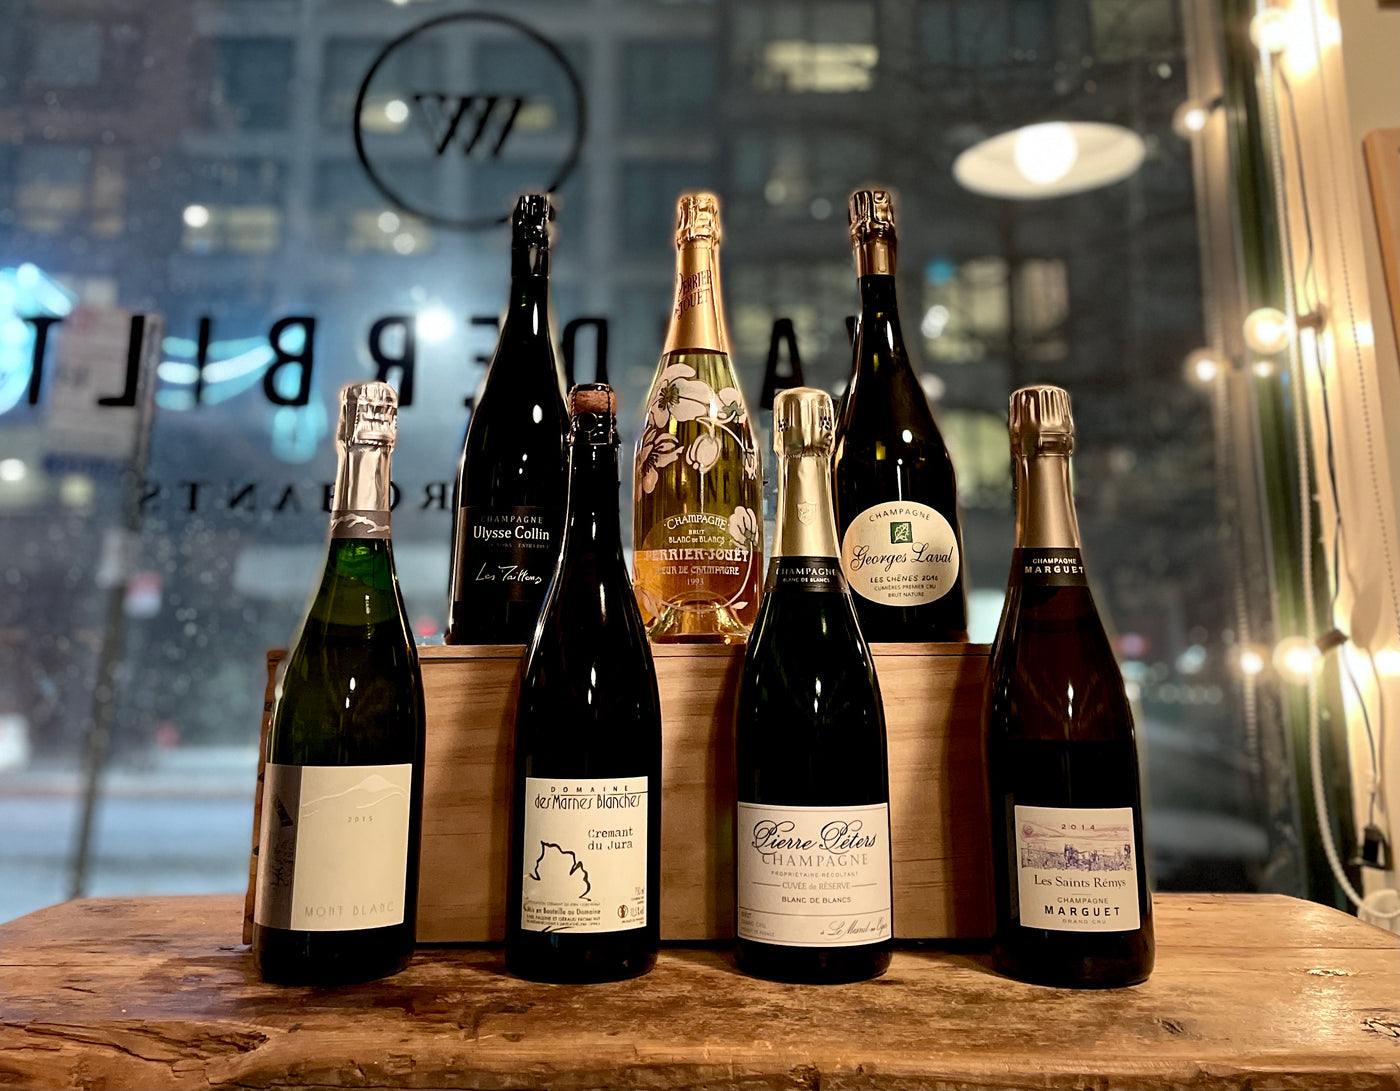 Old and Rare Sparkling Wines